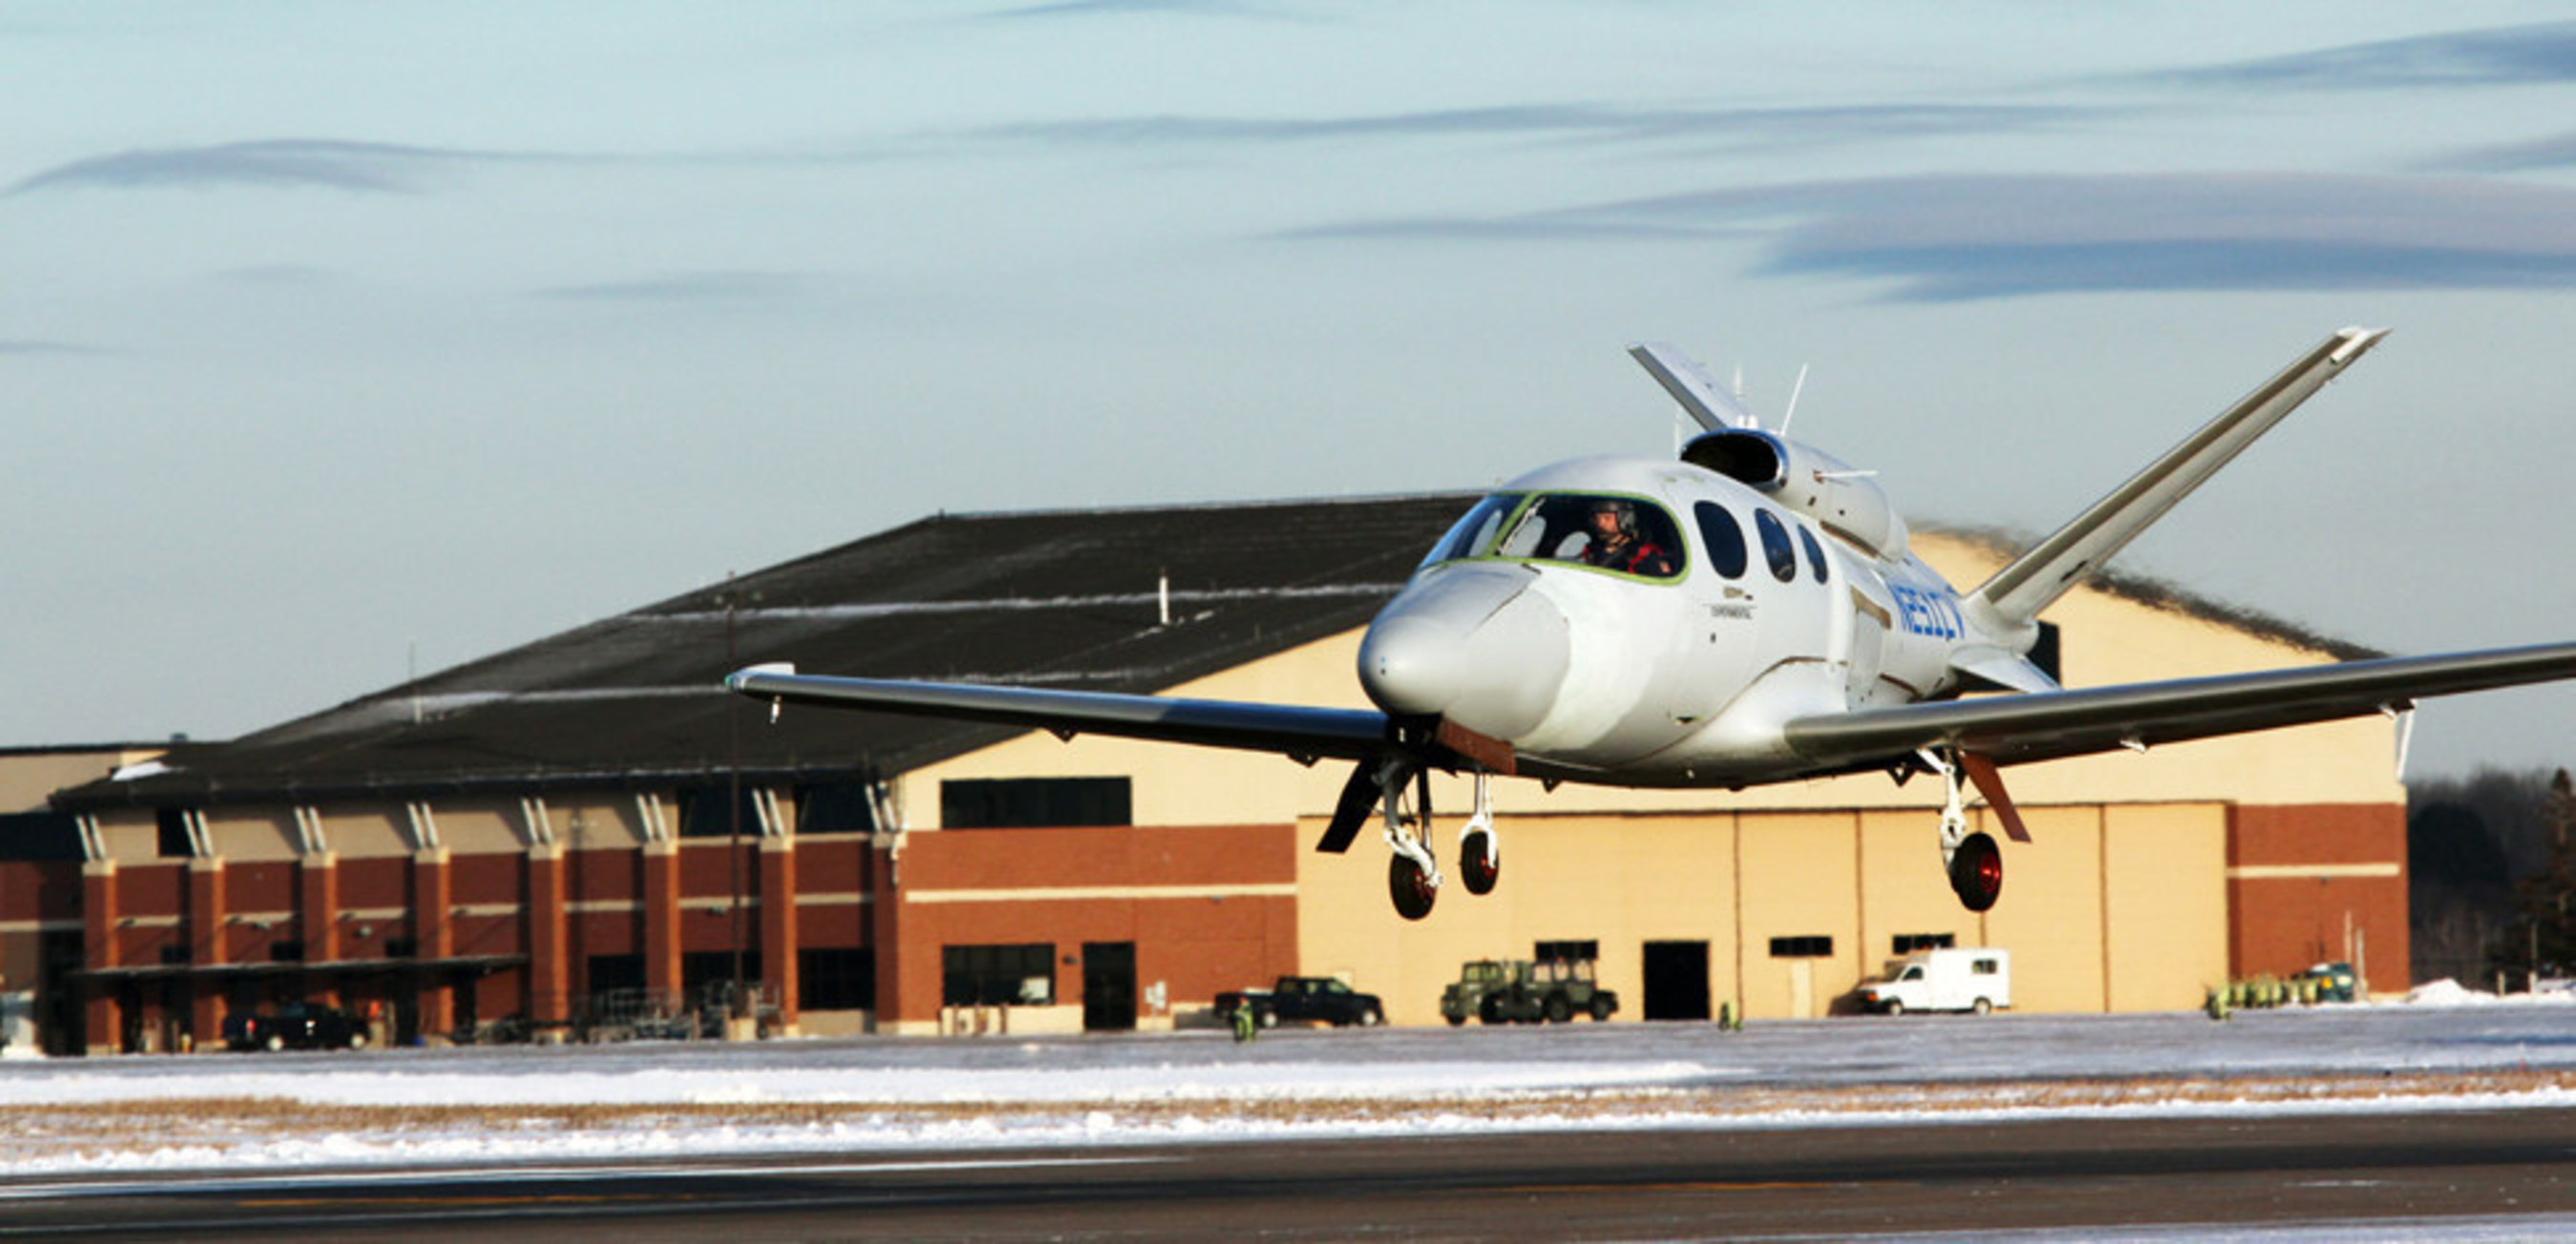 Cirrus flies first production Vision SF50 personal jet